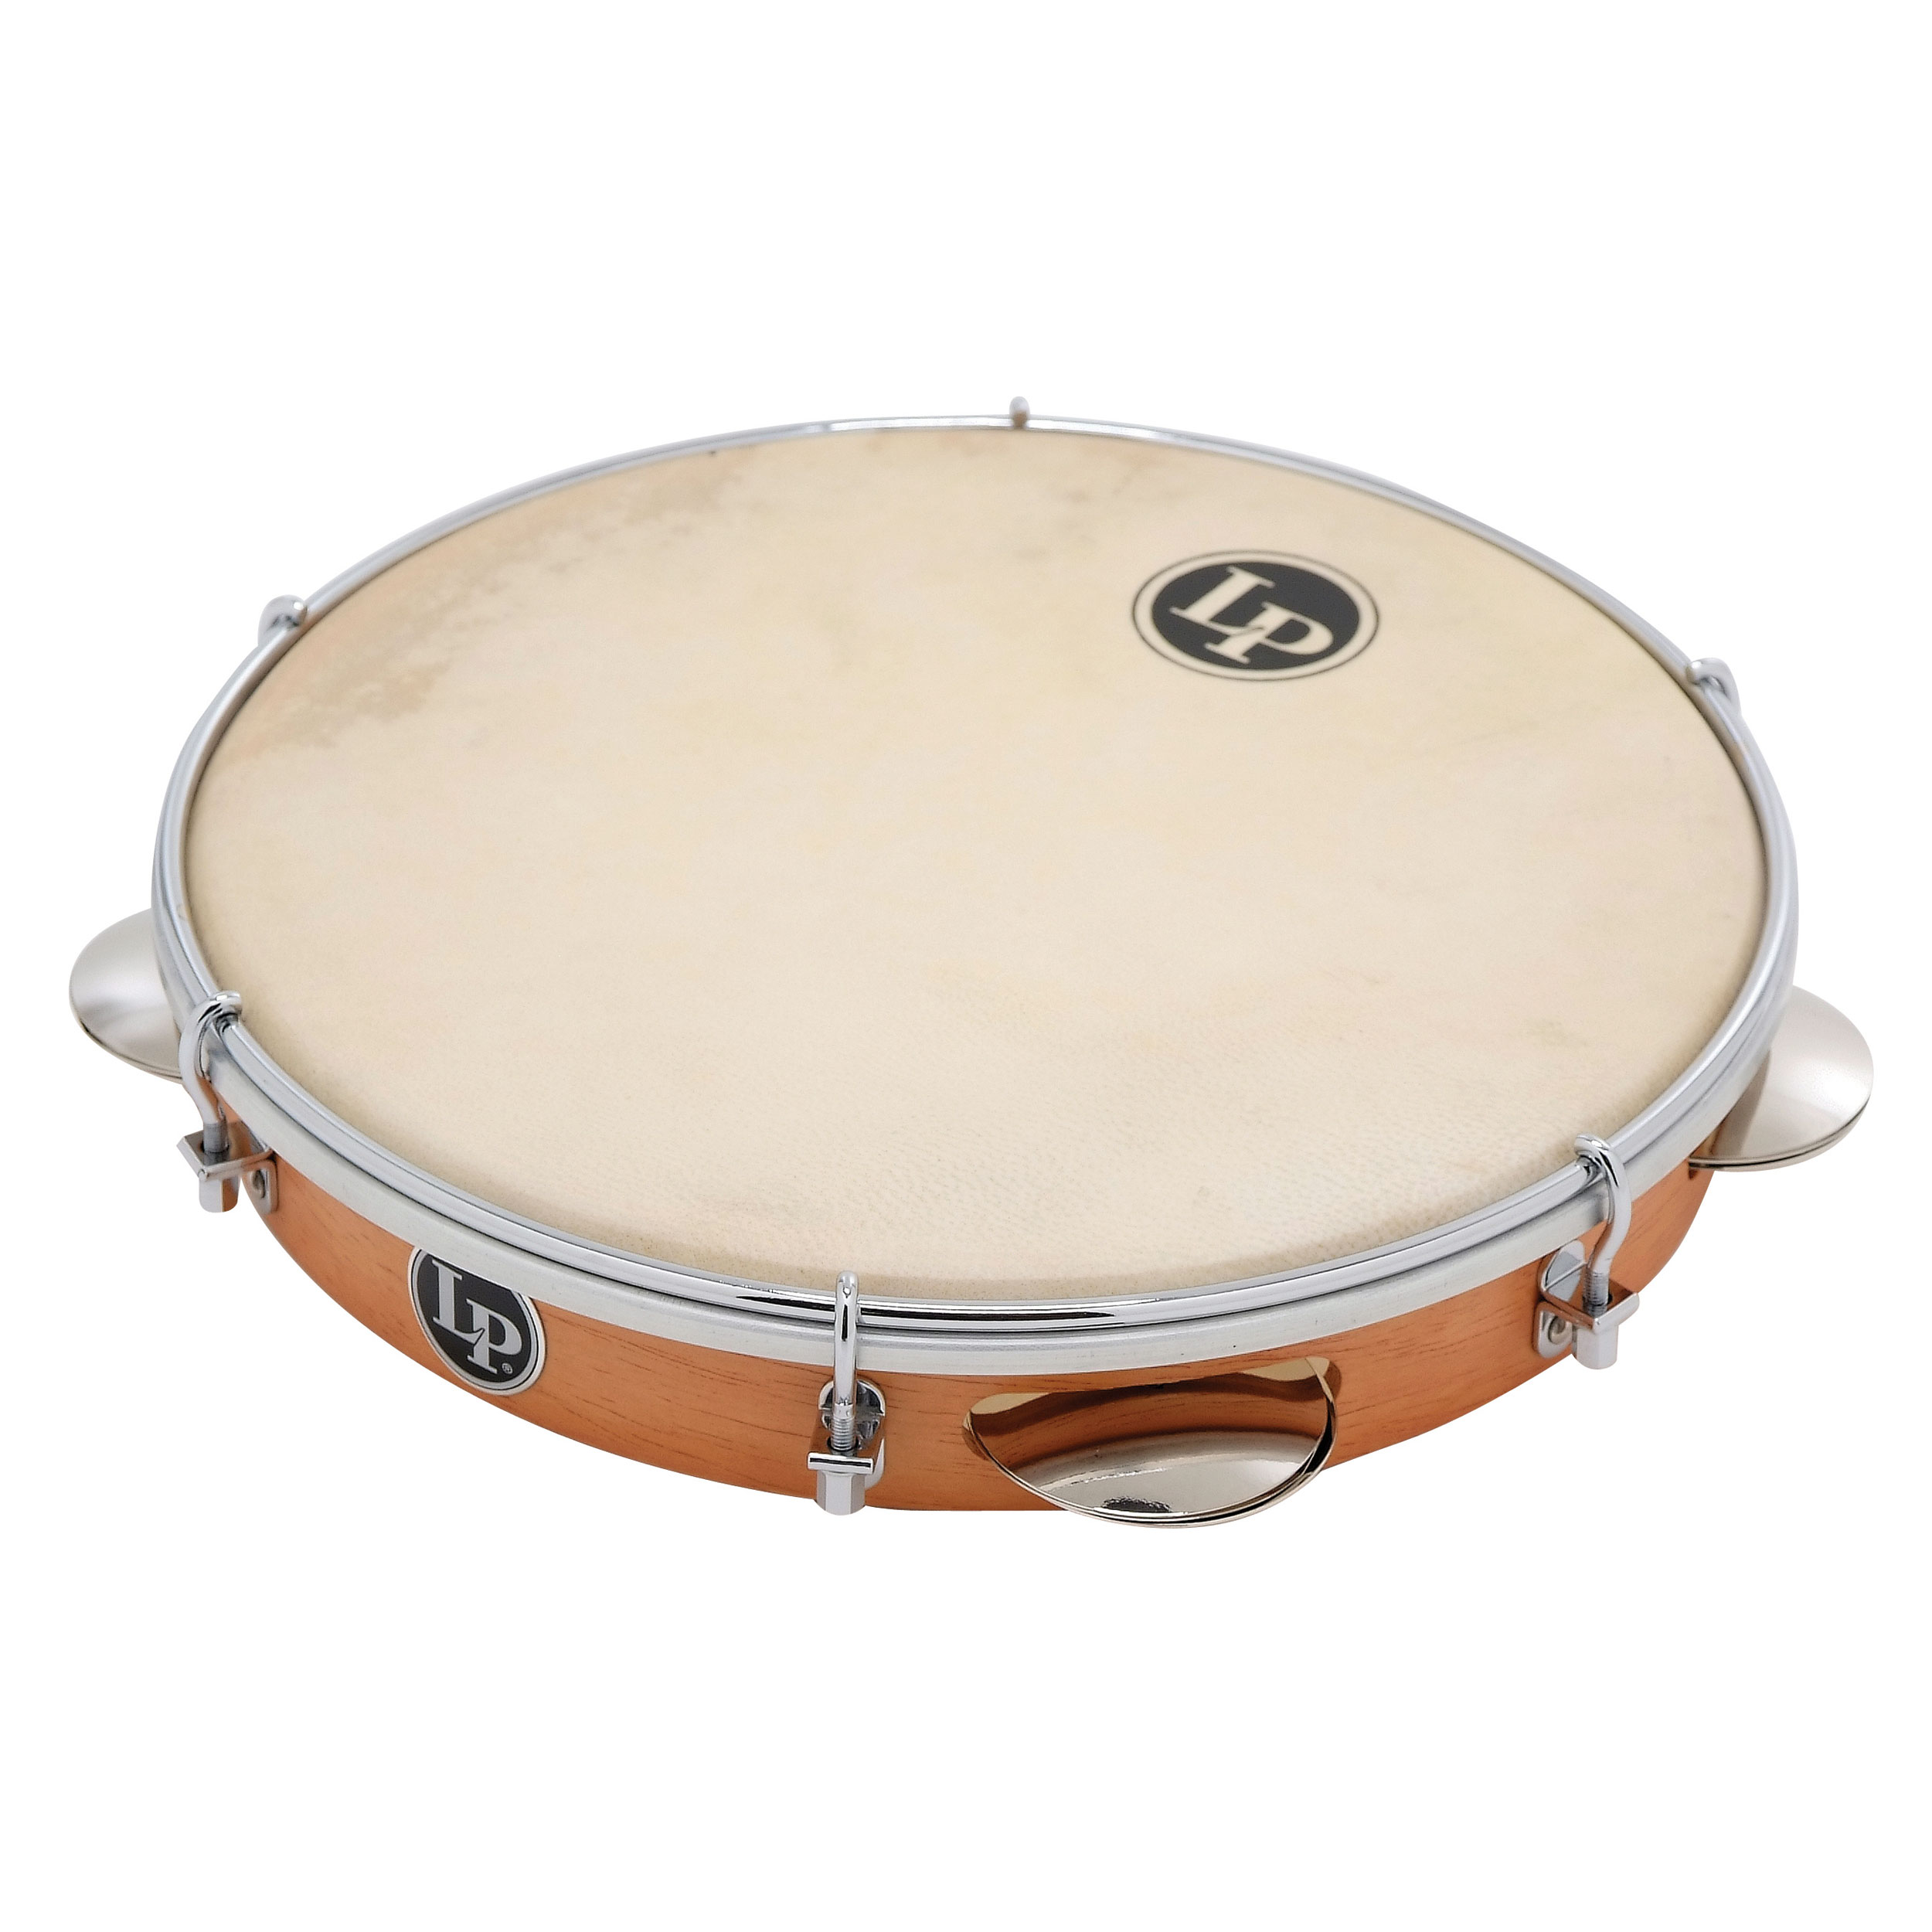 "LP 10"" Wood Pandeiro, Natural Head With Bag"